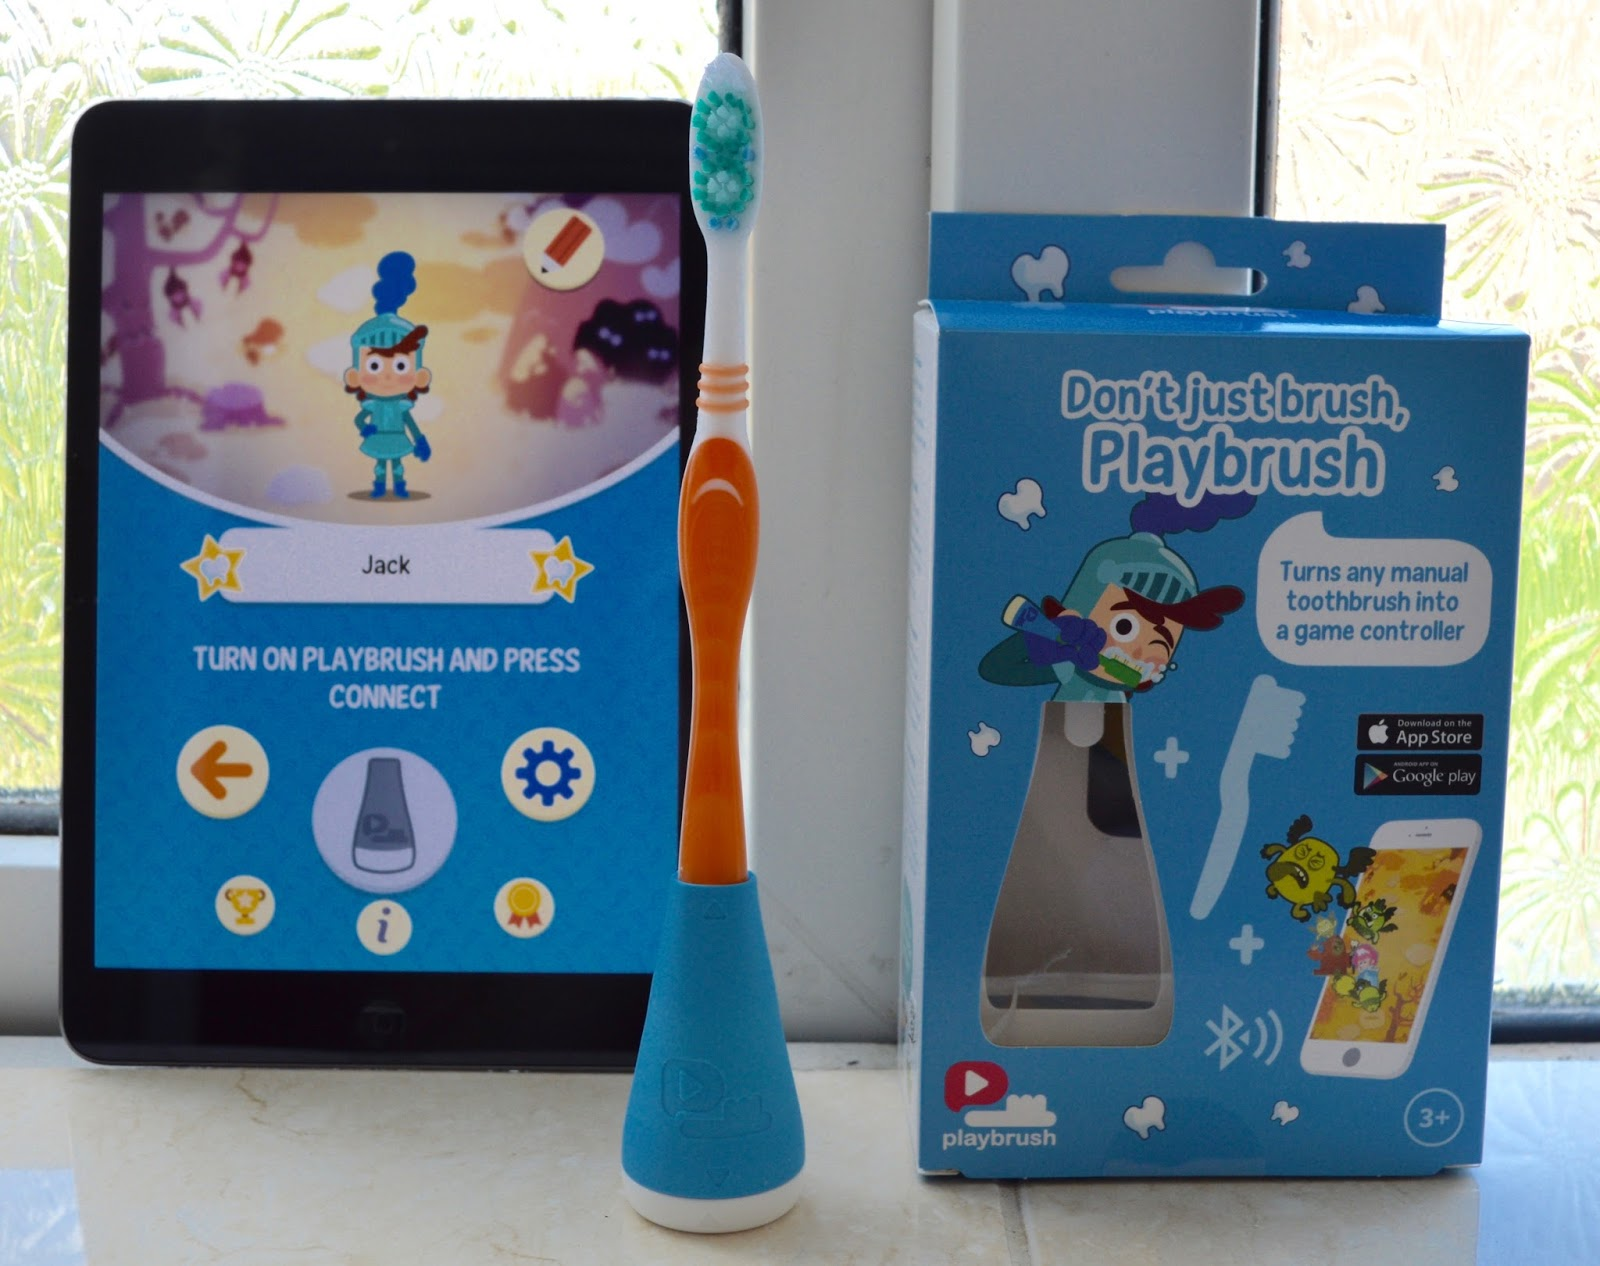 Don't just brush, Playbrush review | Turn your child's toothbrush into a fun game - iPad app